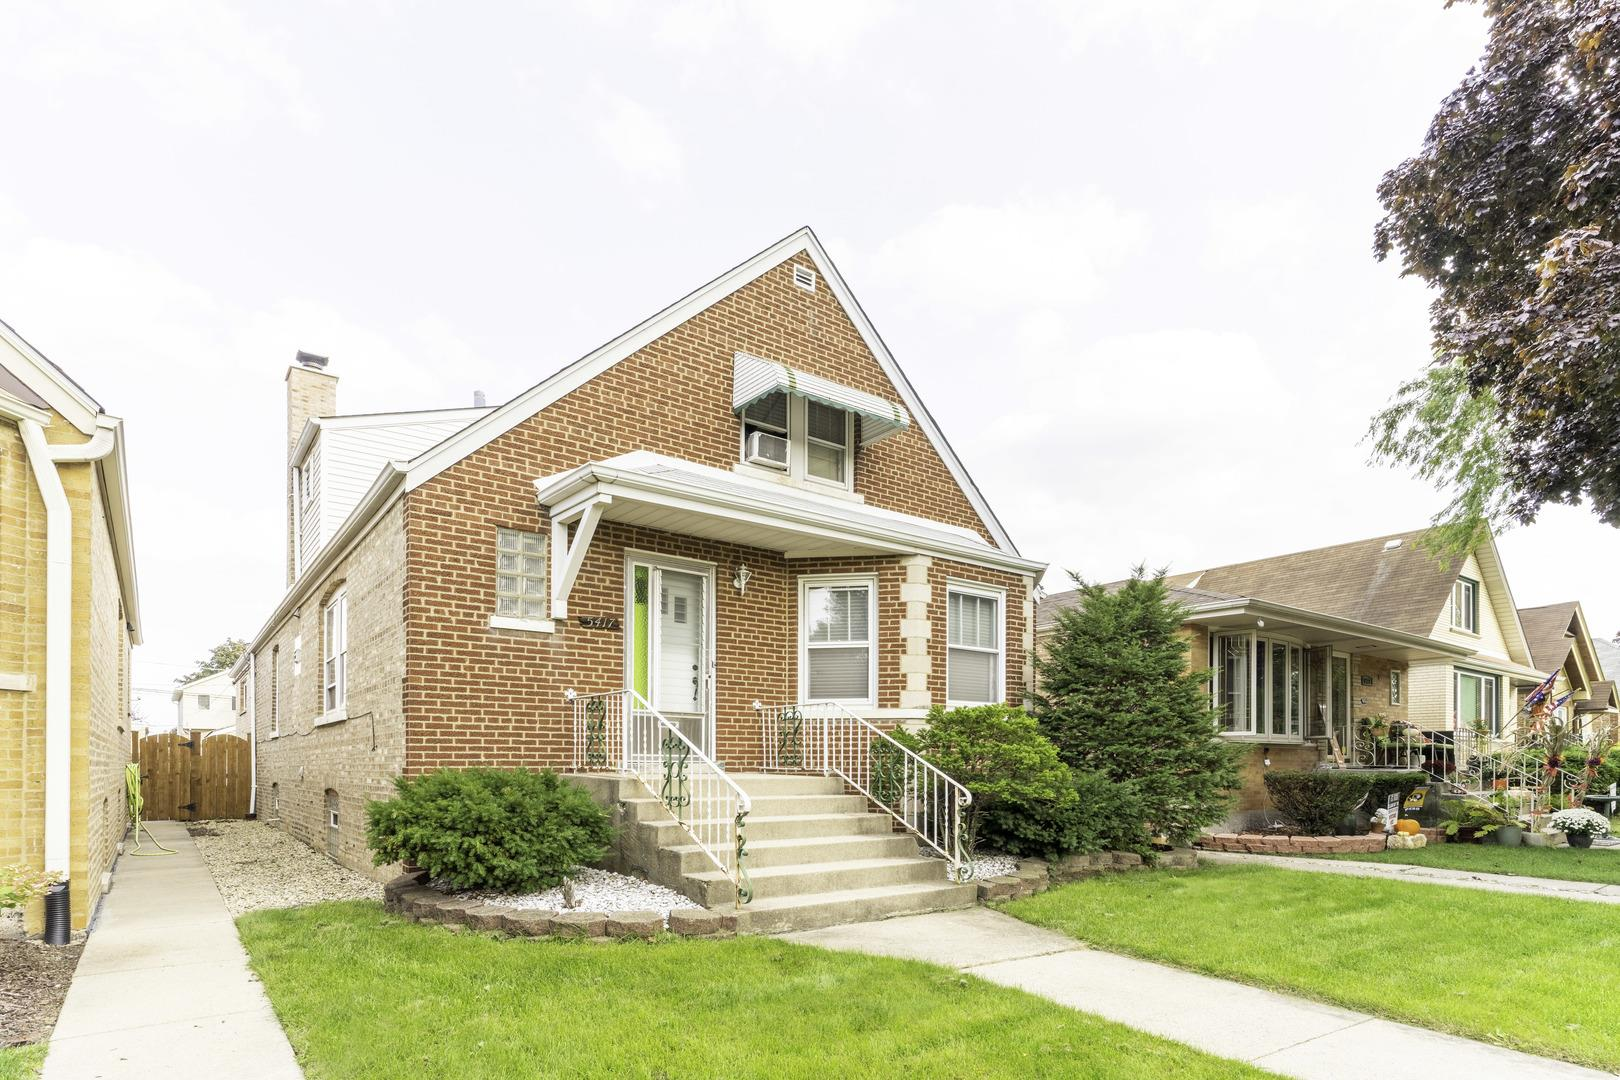 5417 S Sayre Avenue, Chicago, IL 60638 - #: 10860604